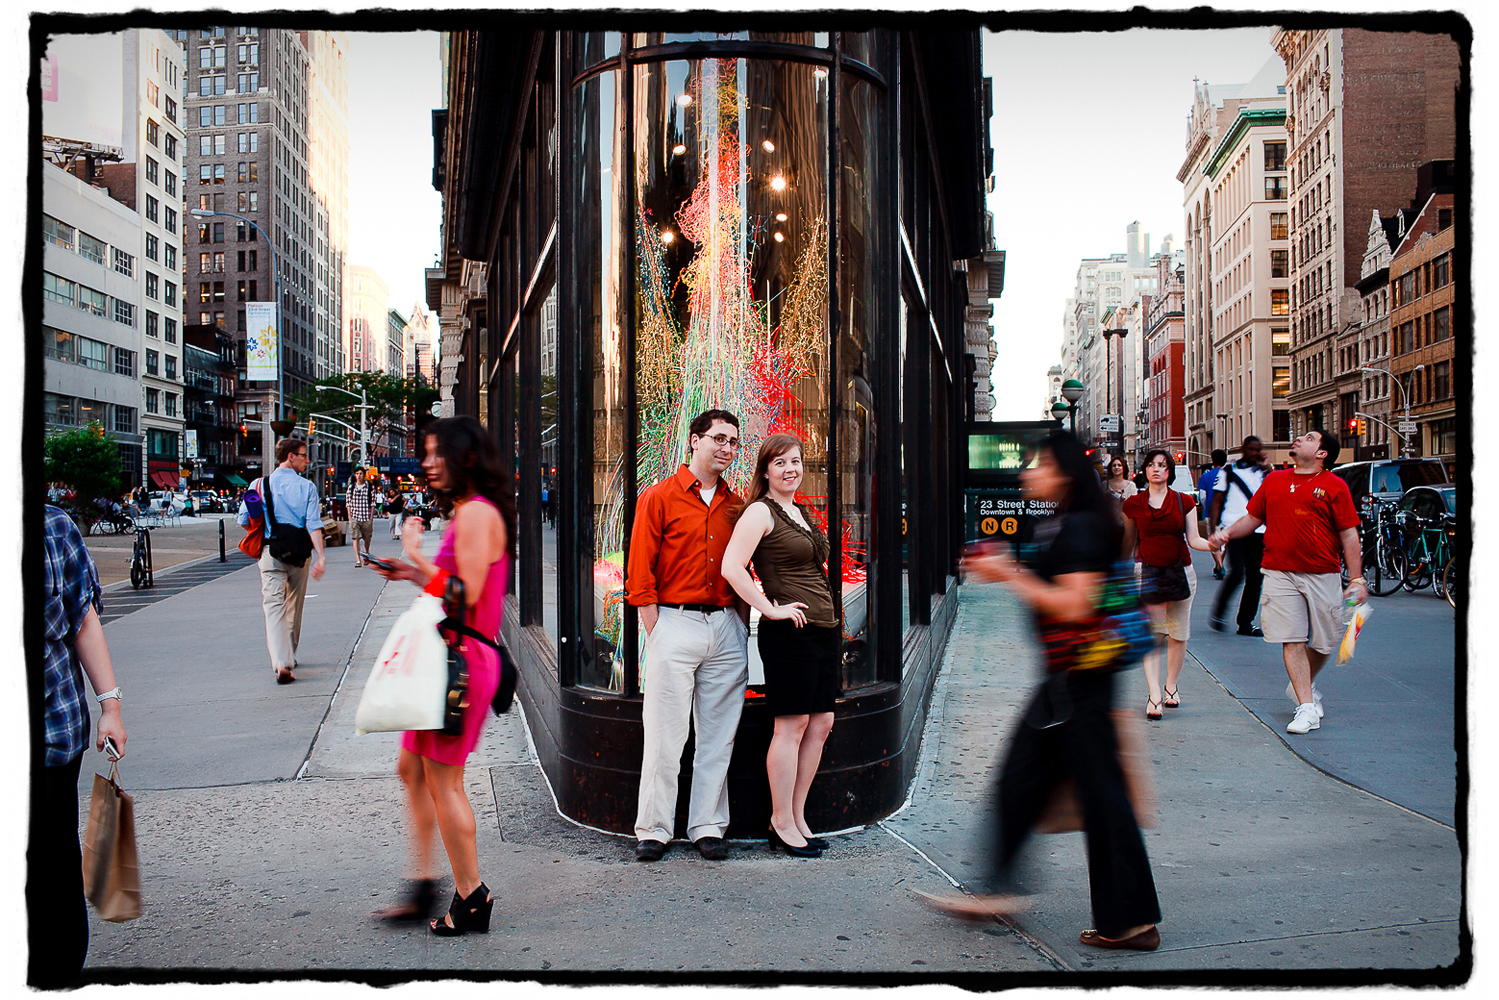 Engagement Portrait: Katie & Jason stop to take in the action in front of NYC's Flatiron Building.